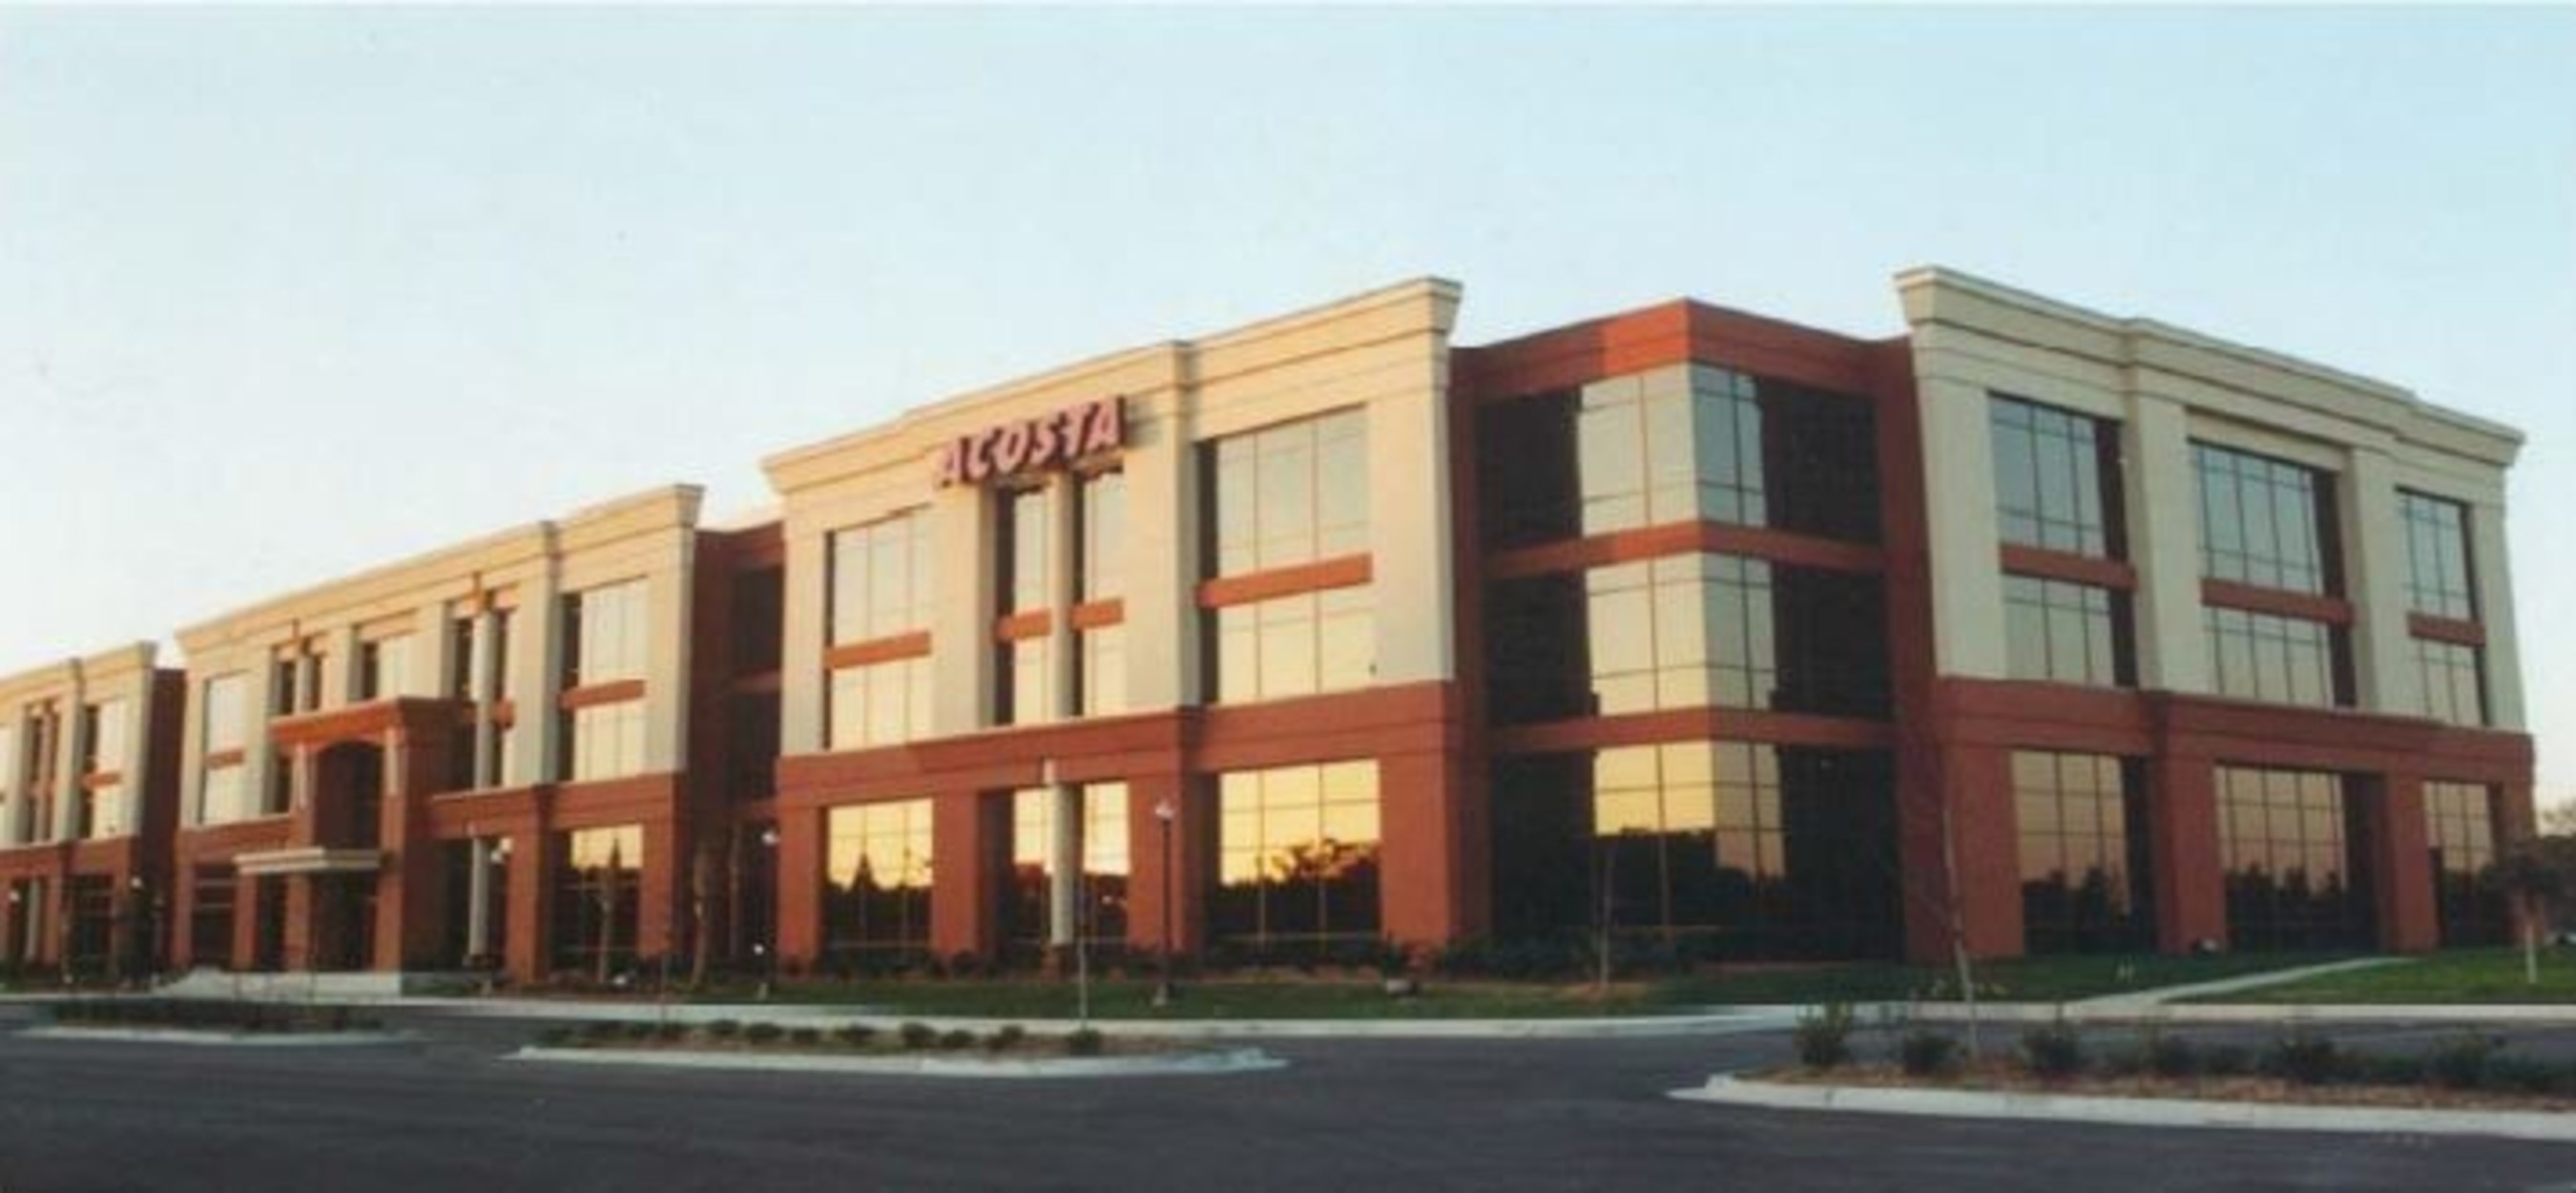 CPA:18 - Global acquires a 88,000 square-foot, Class A office facility for approximately $17 million, including acquisition costs. Located in Jacksonville, Florida, the property is triple-net leased to Acosta, Inc. for a 12-year period.